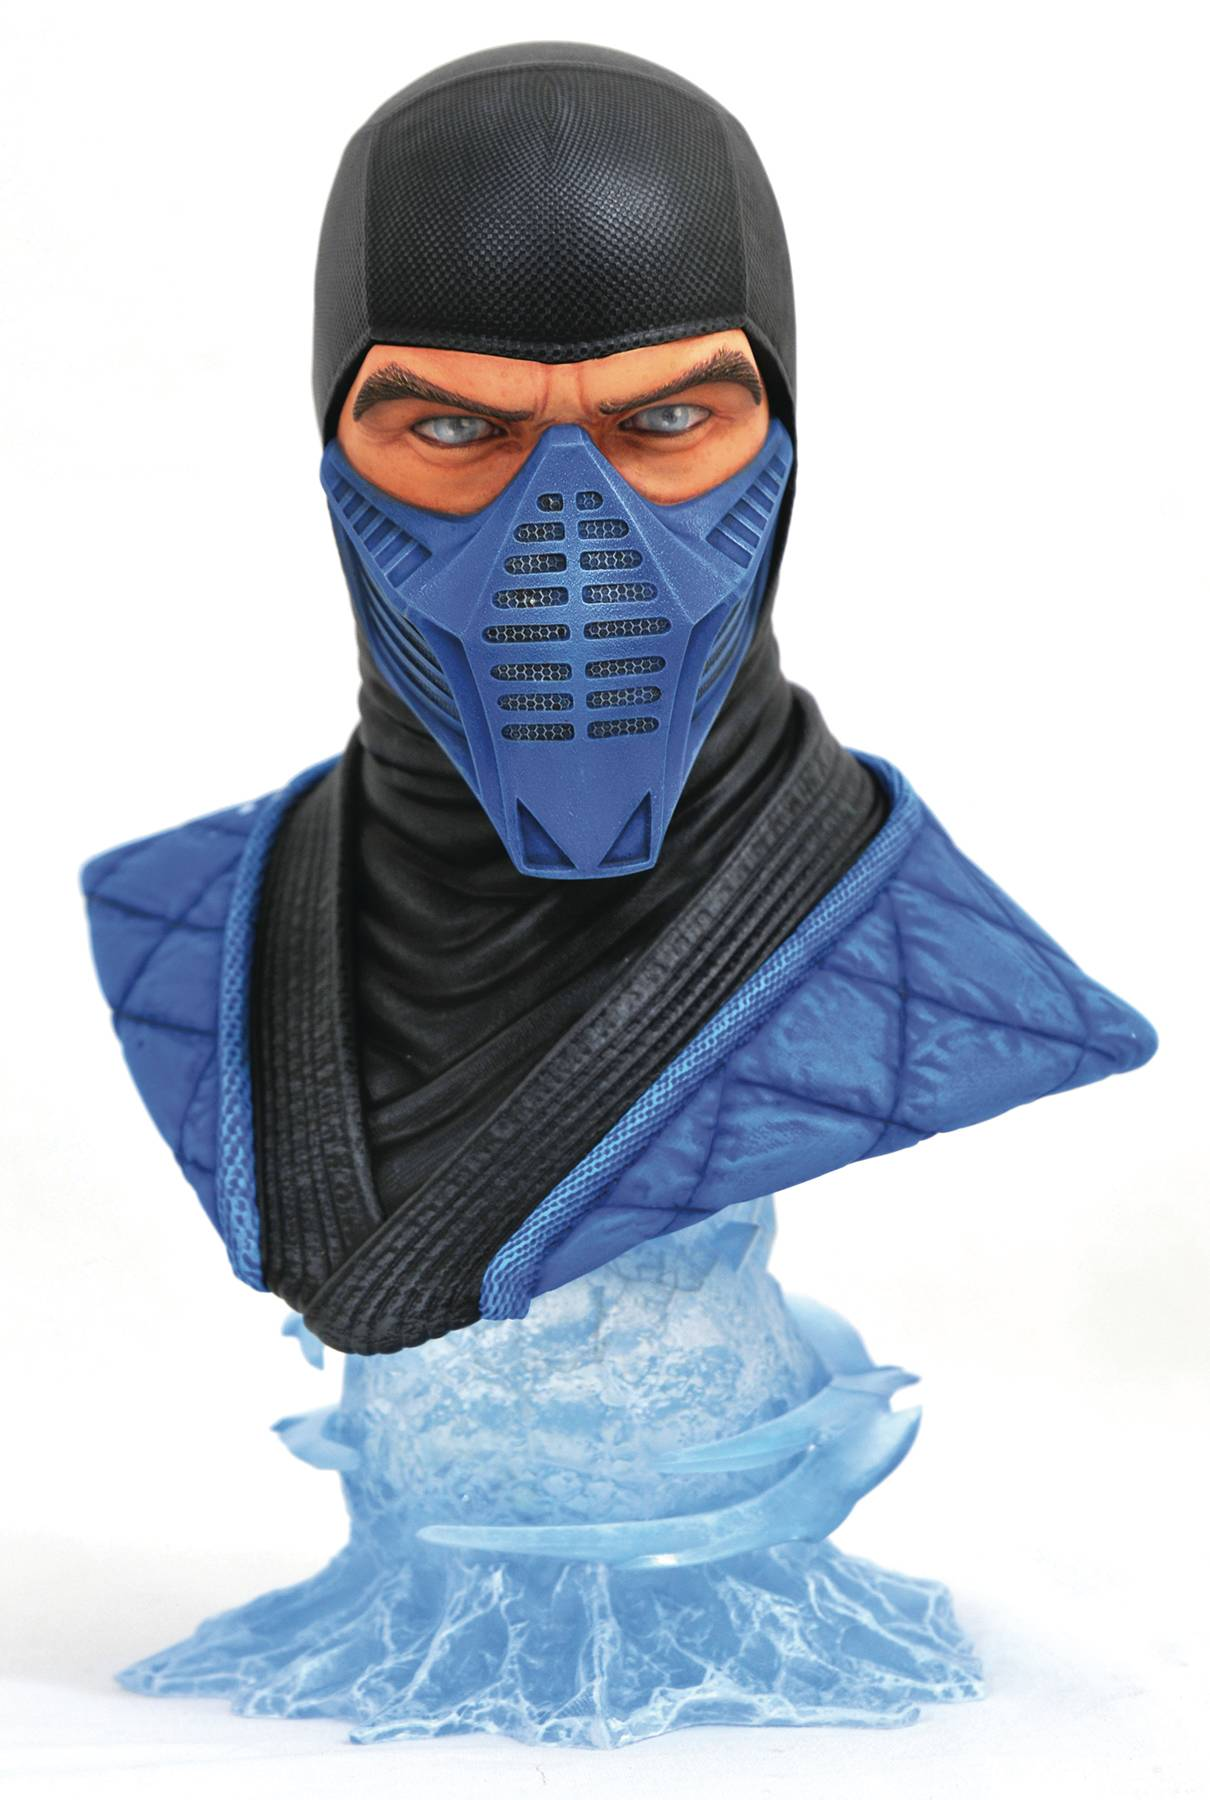 MORTAL KOMBAT 11 LEGENDS IN 3D SUB ZERO 1/2 SCALE BUST